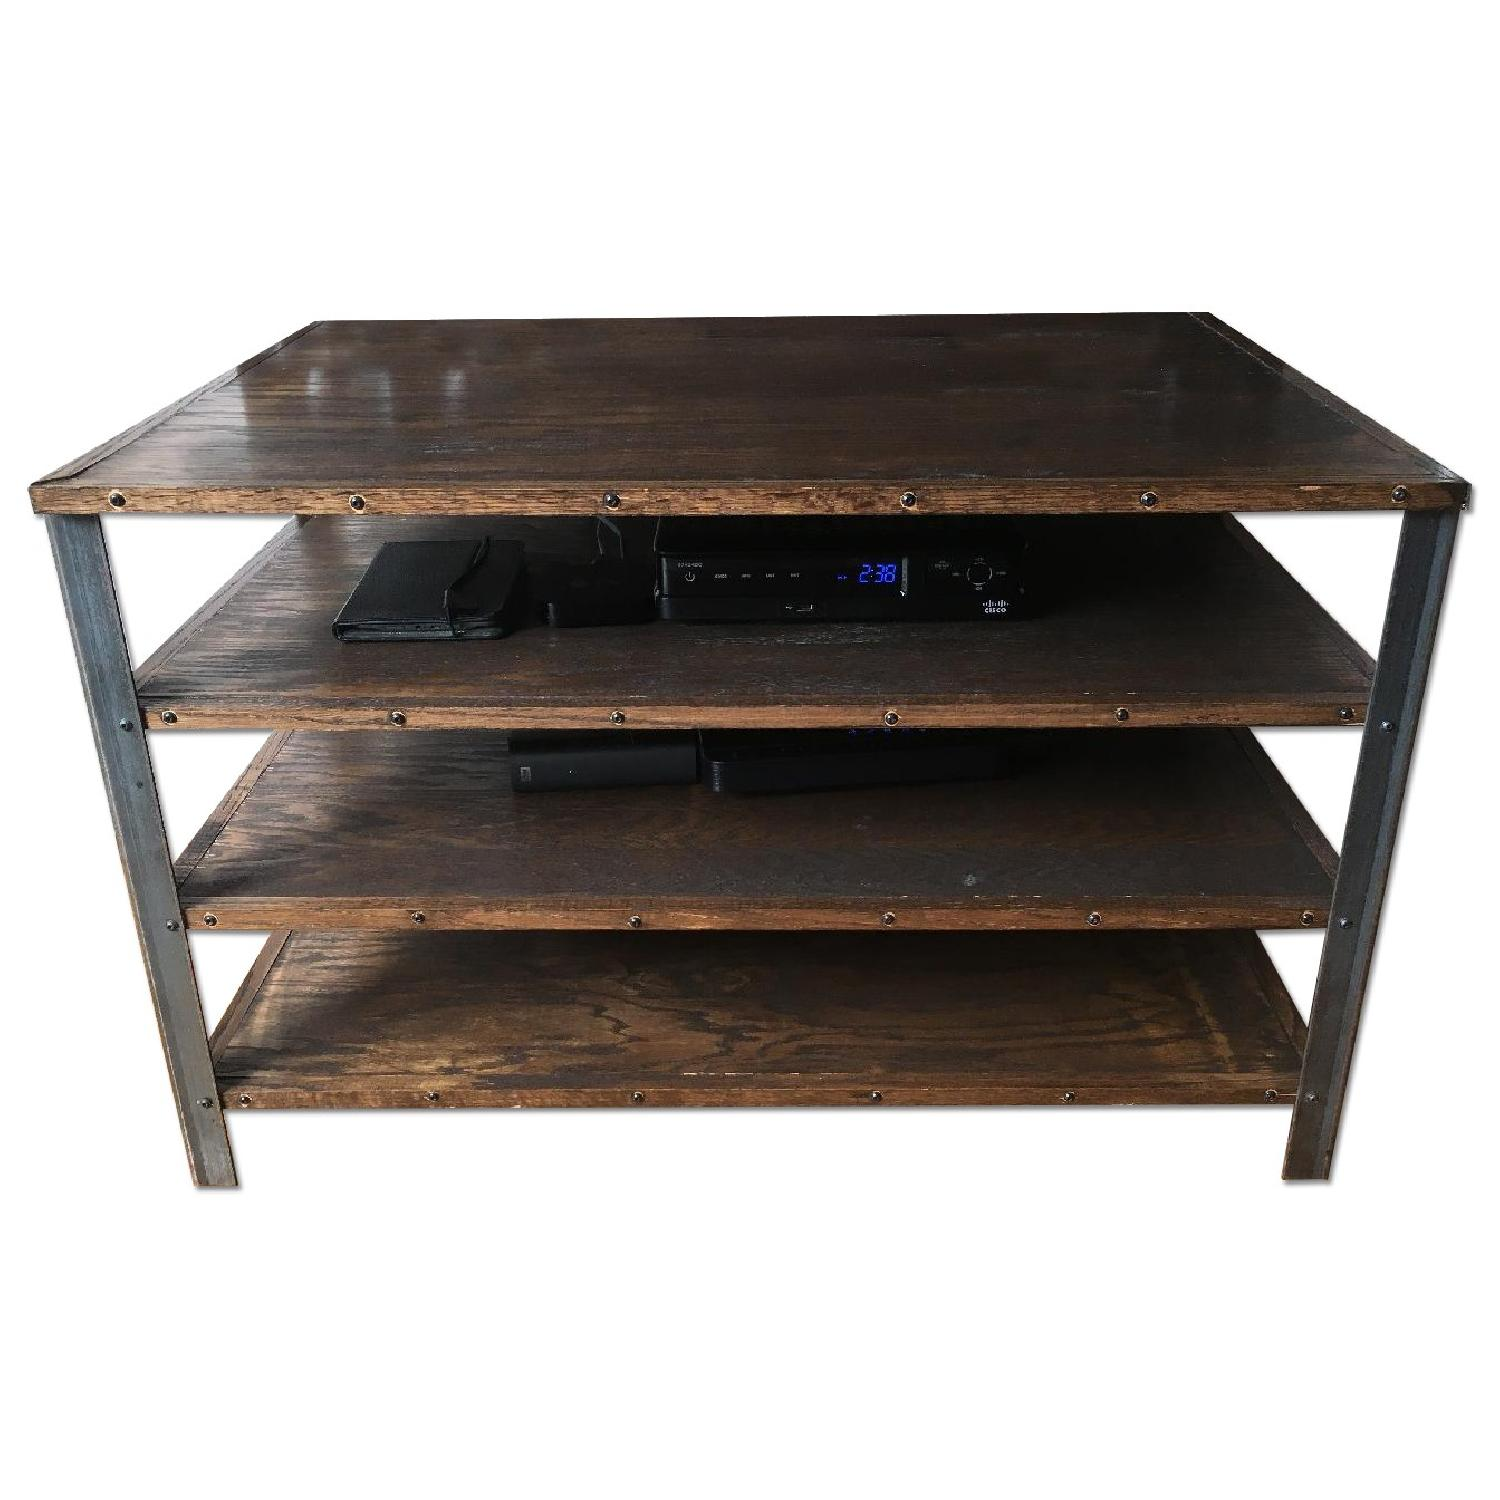 Antique Industrial Style Media Storage Shelves - image-0